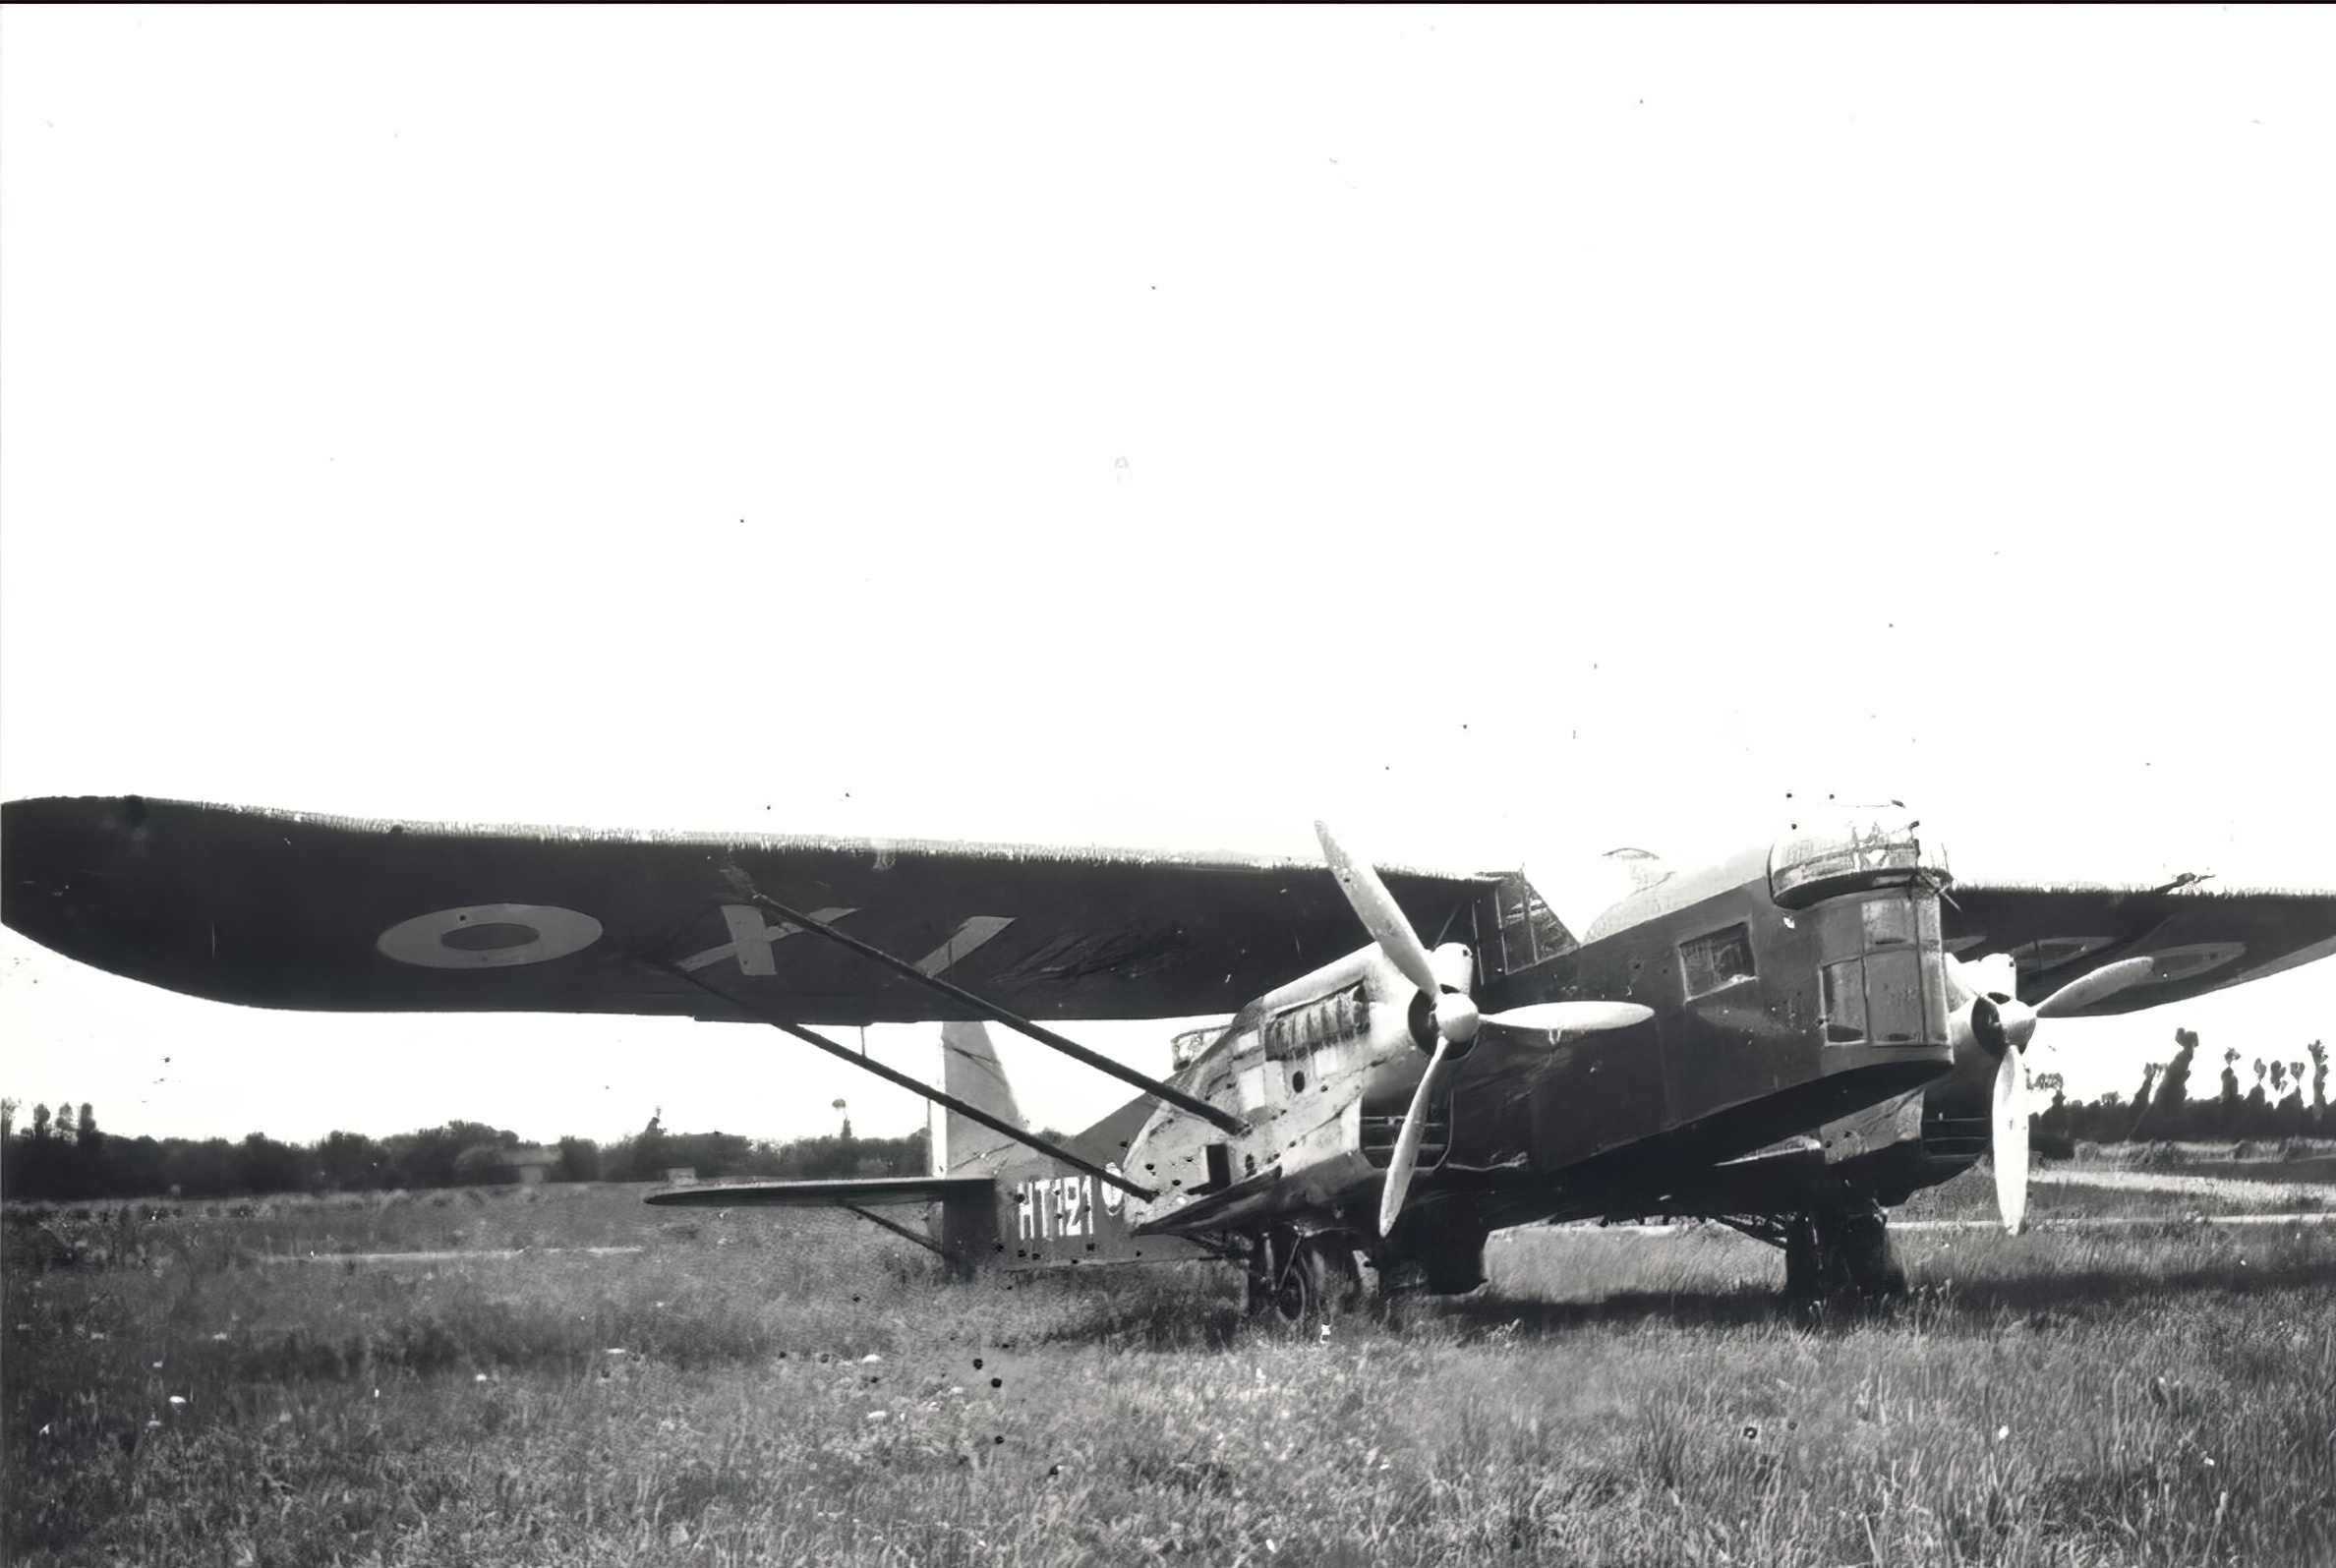 French Airforce Potez 540 HT121 at a French airbase France ebay 01